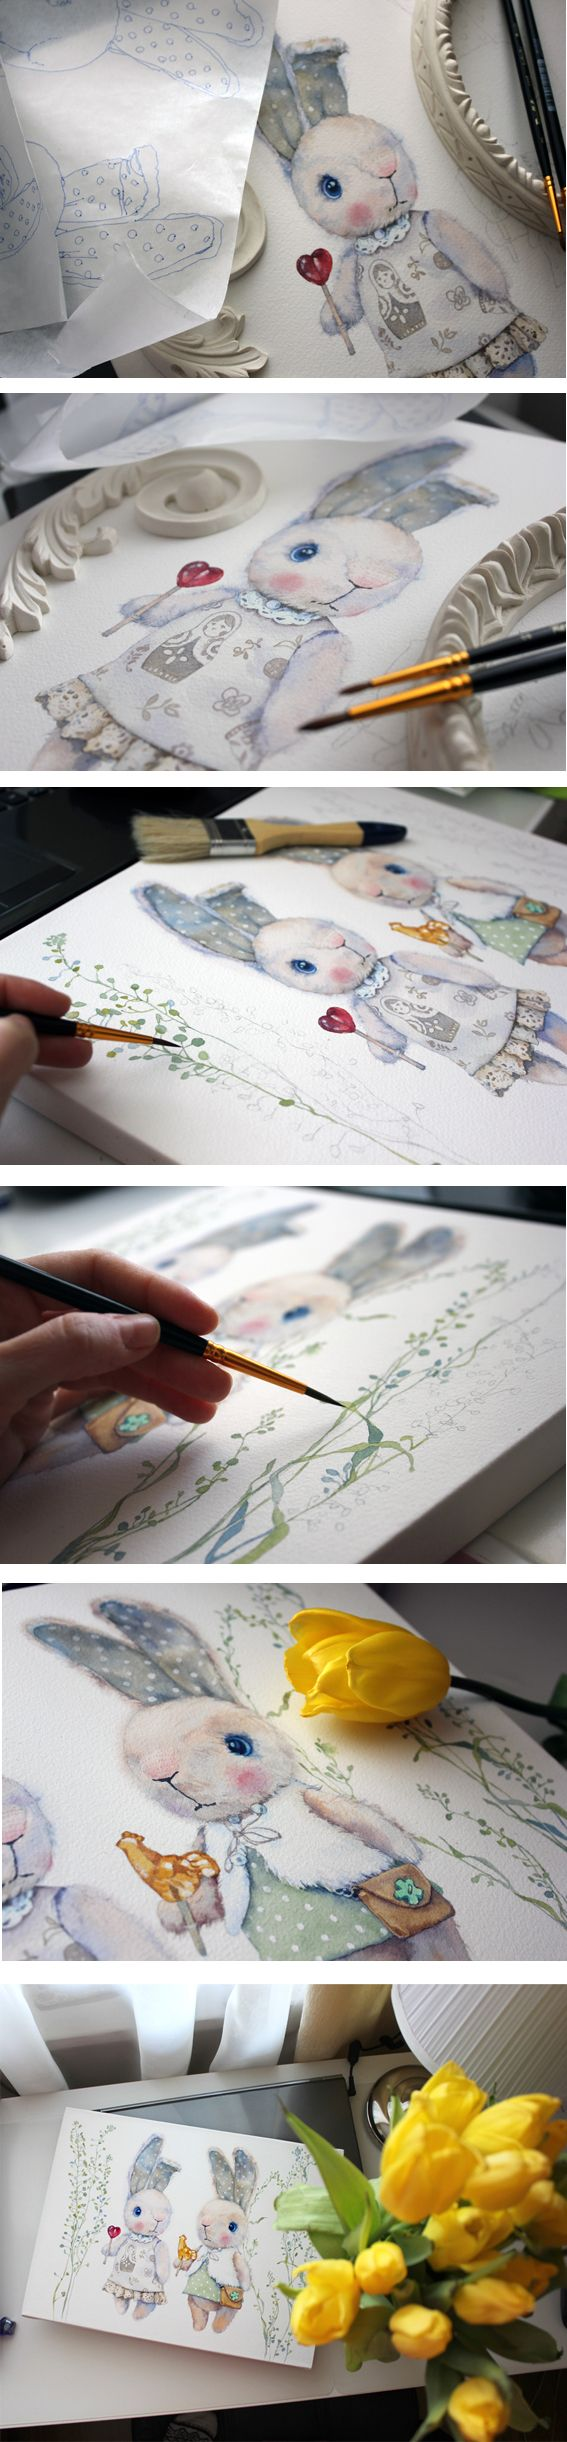 Watercolor rabbits on Behance